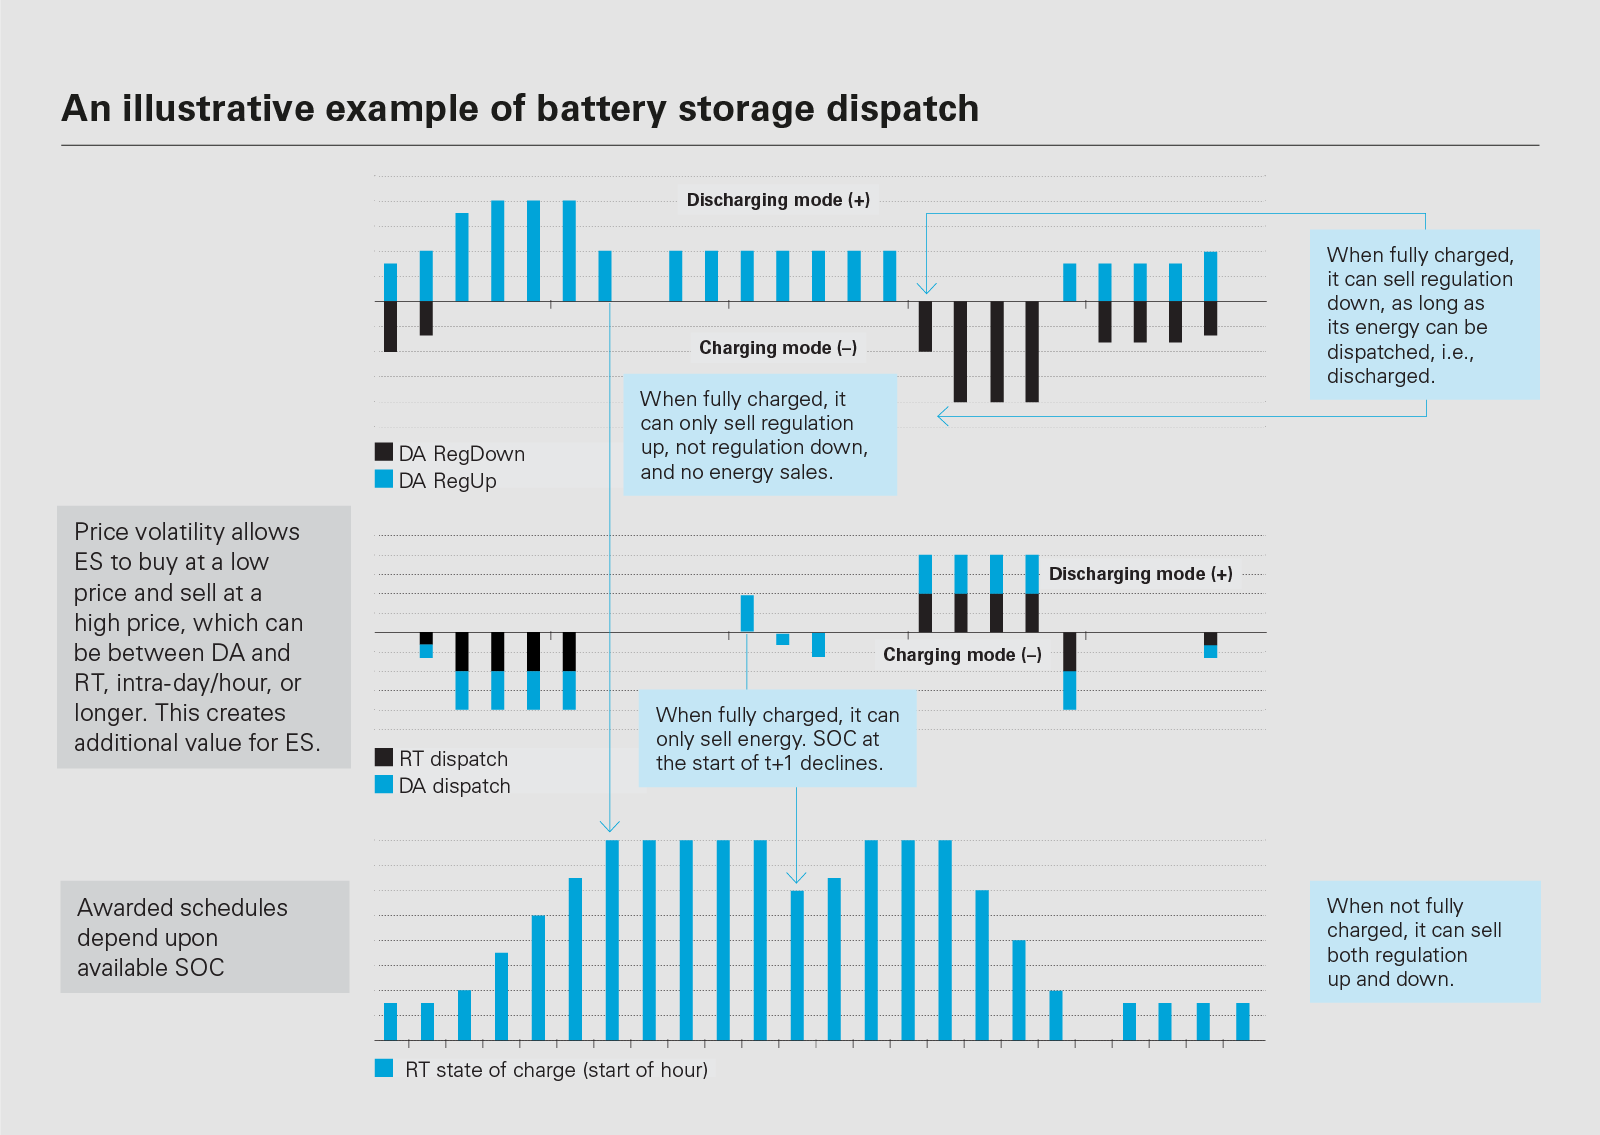 Energy_storage_LON0319065_Chart8_1600x900.png